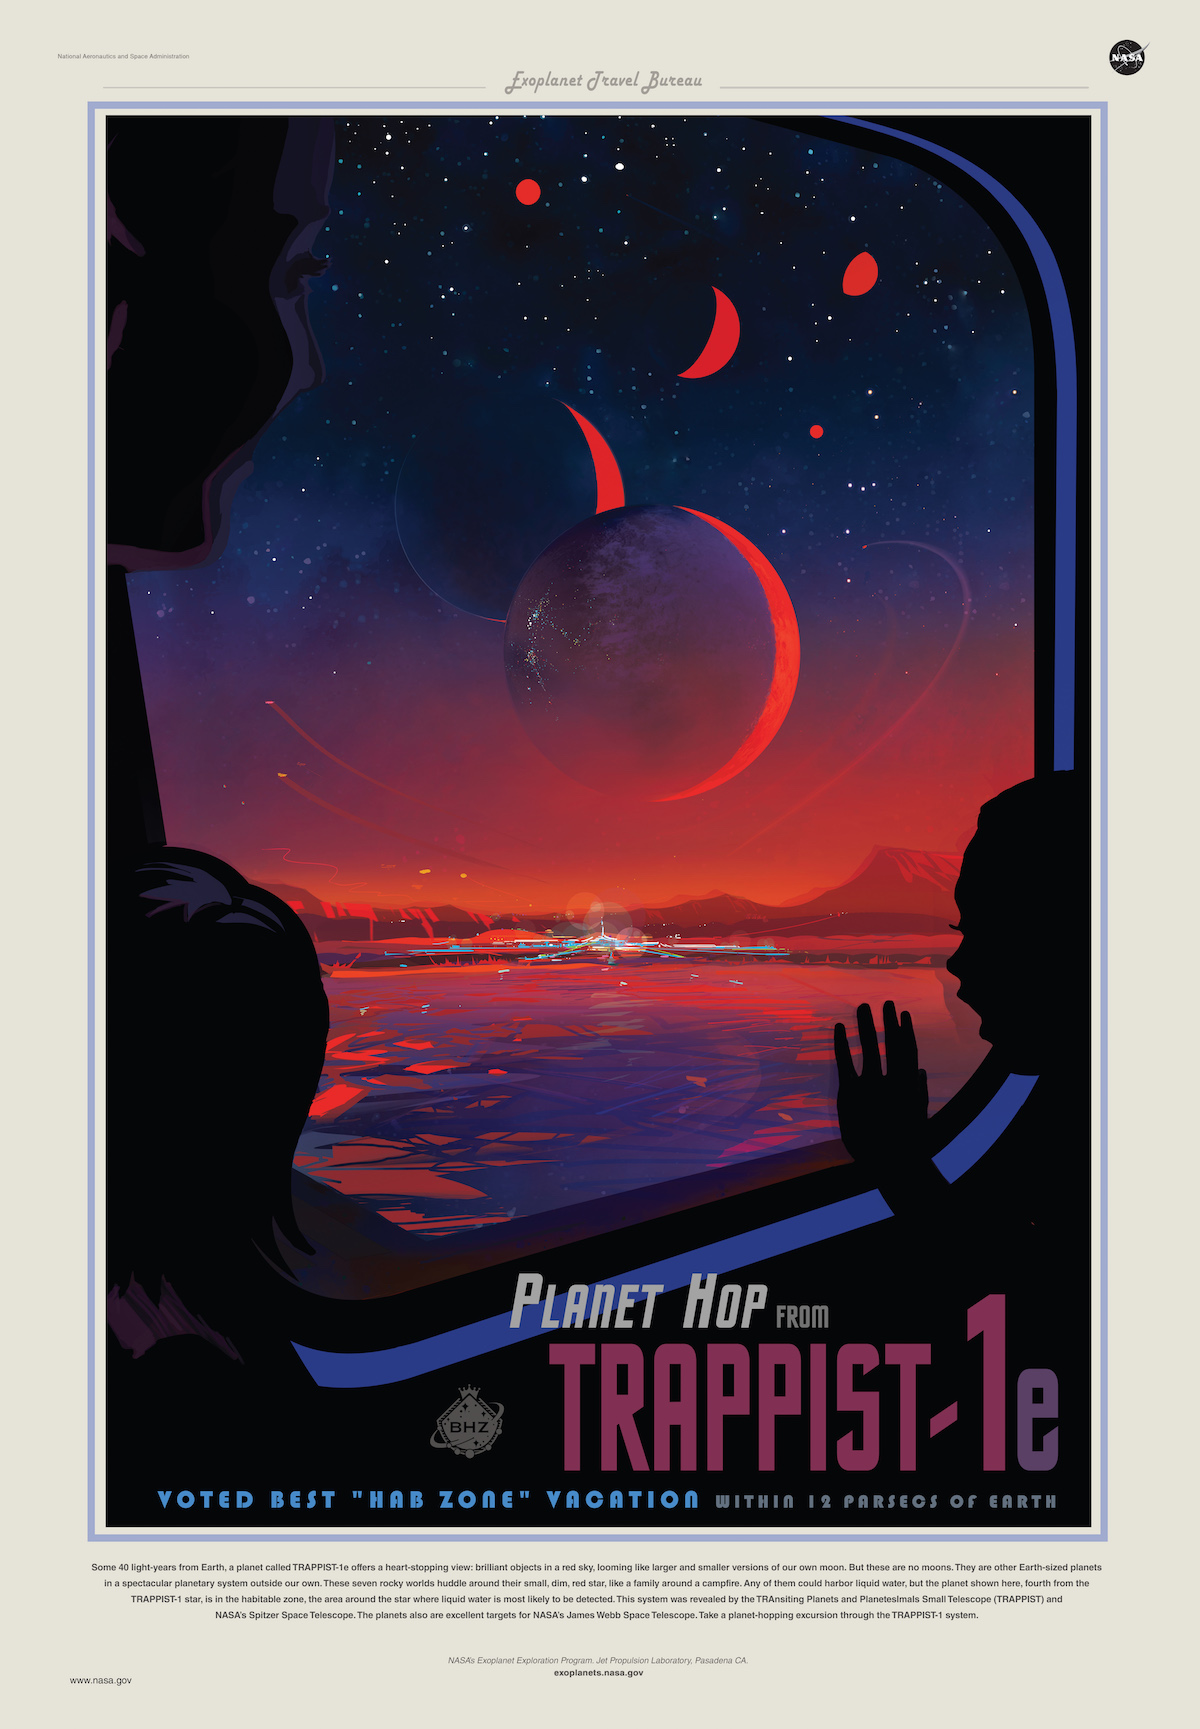 Truth about Trappist-1 TrappistTravelbureau_small